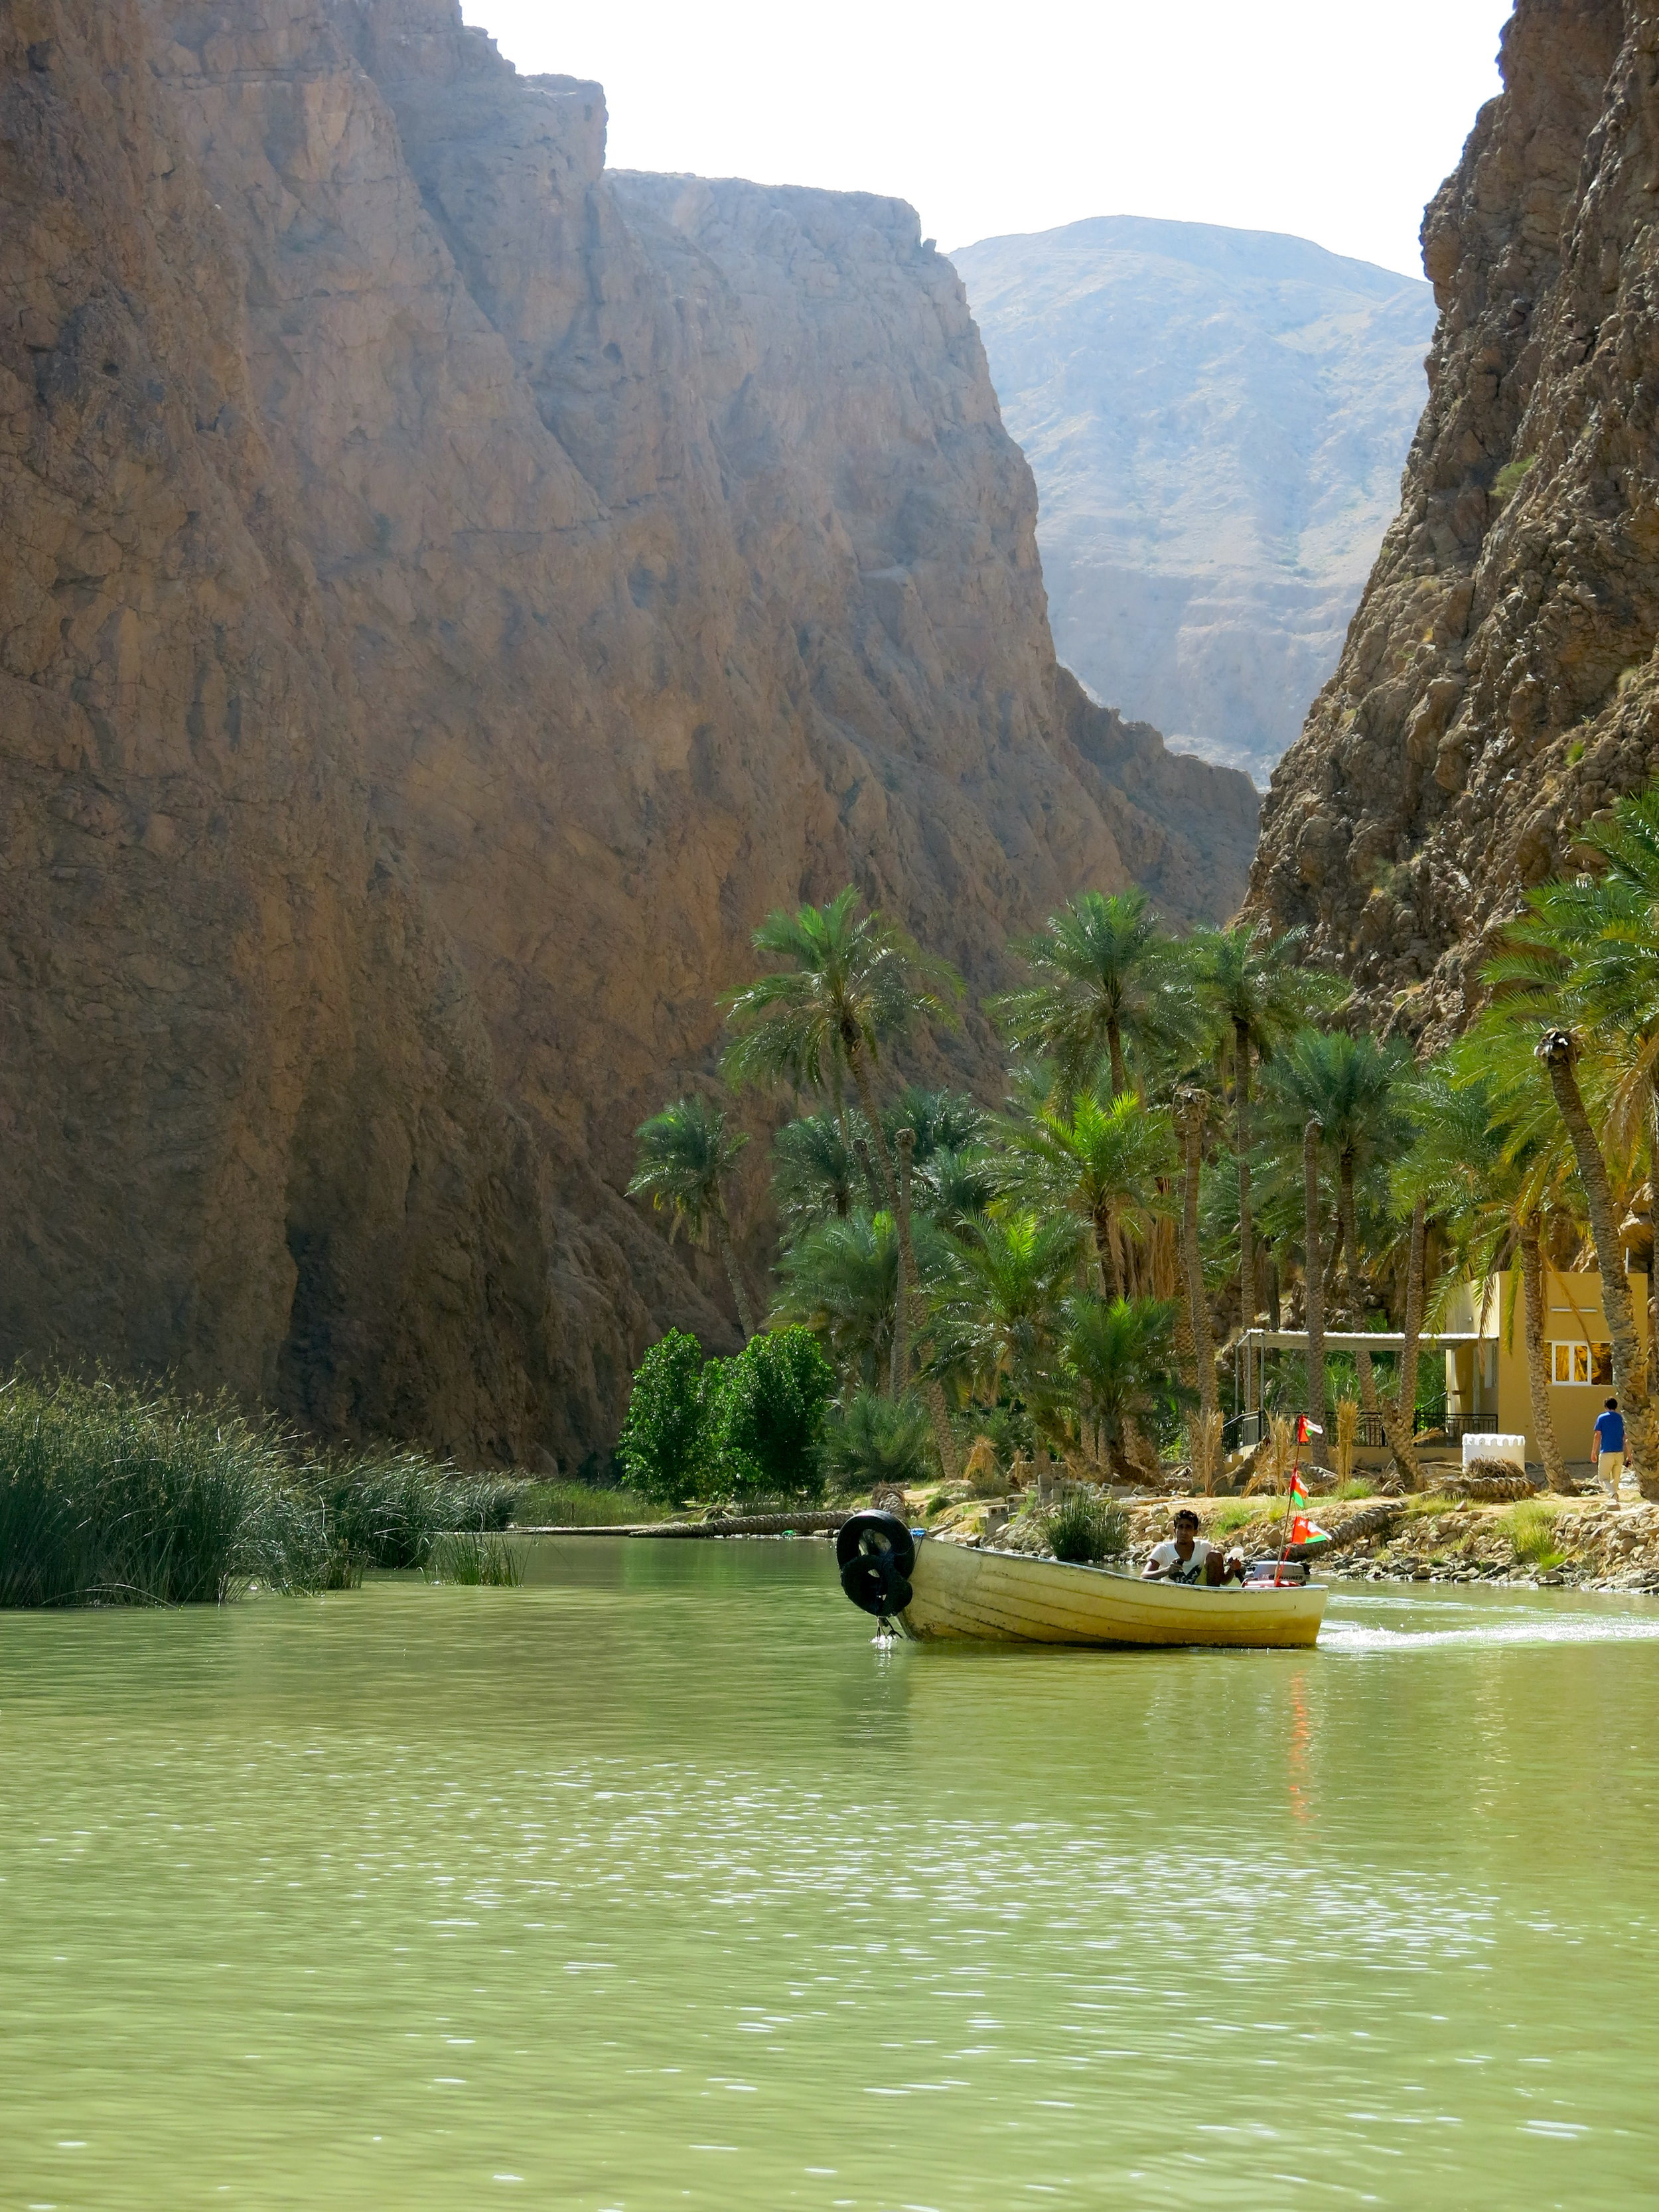 Arriving at the starting point of the hike in Wadi Shab